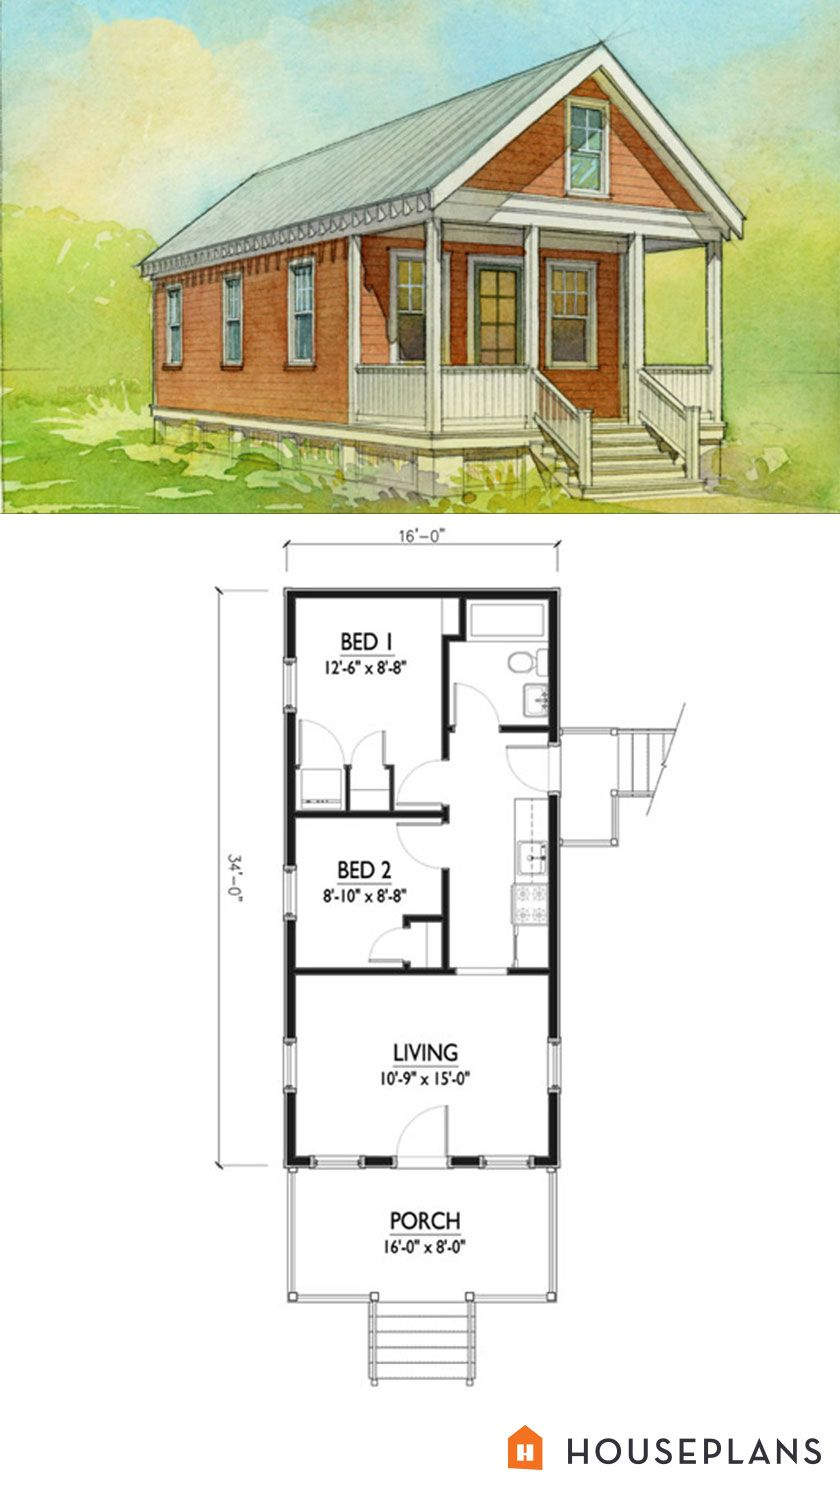 Small katrina cottage house plan 500sft 2br 1 bath by Tiny little house plans